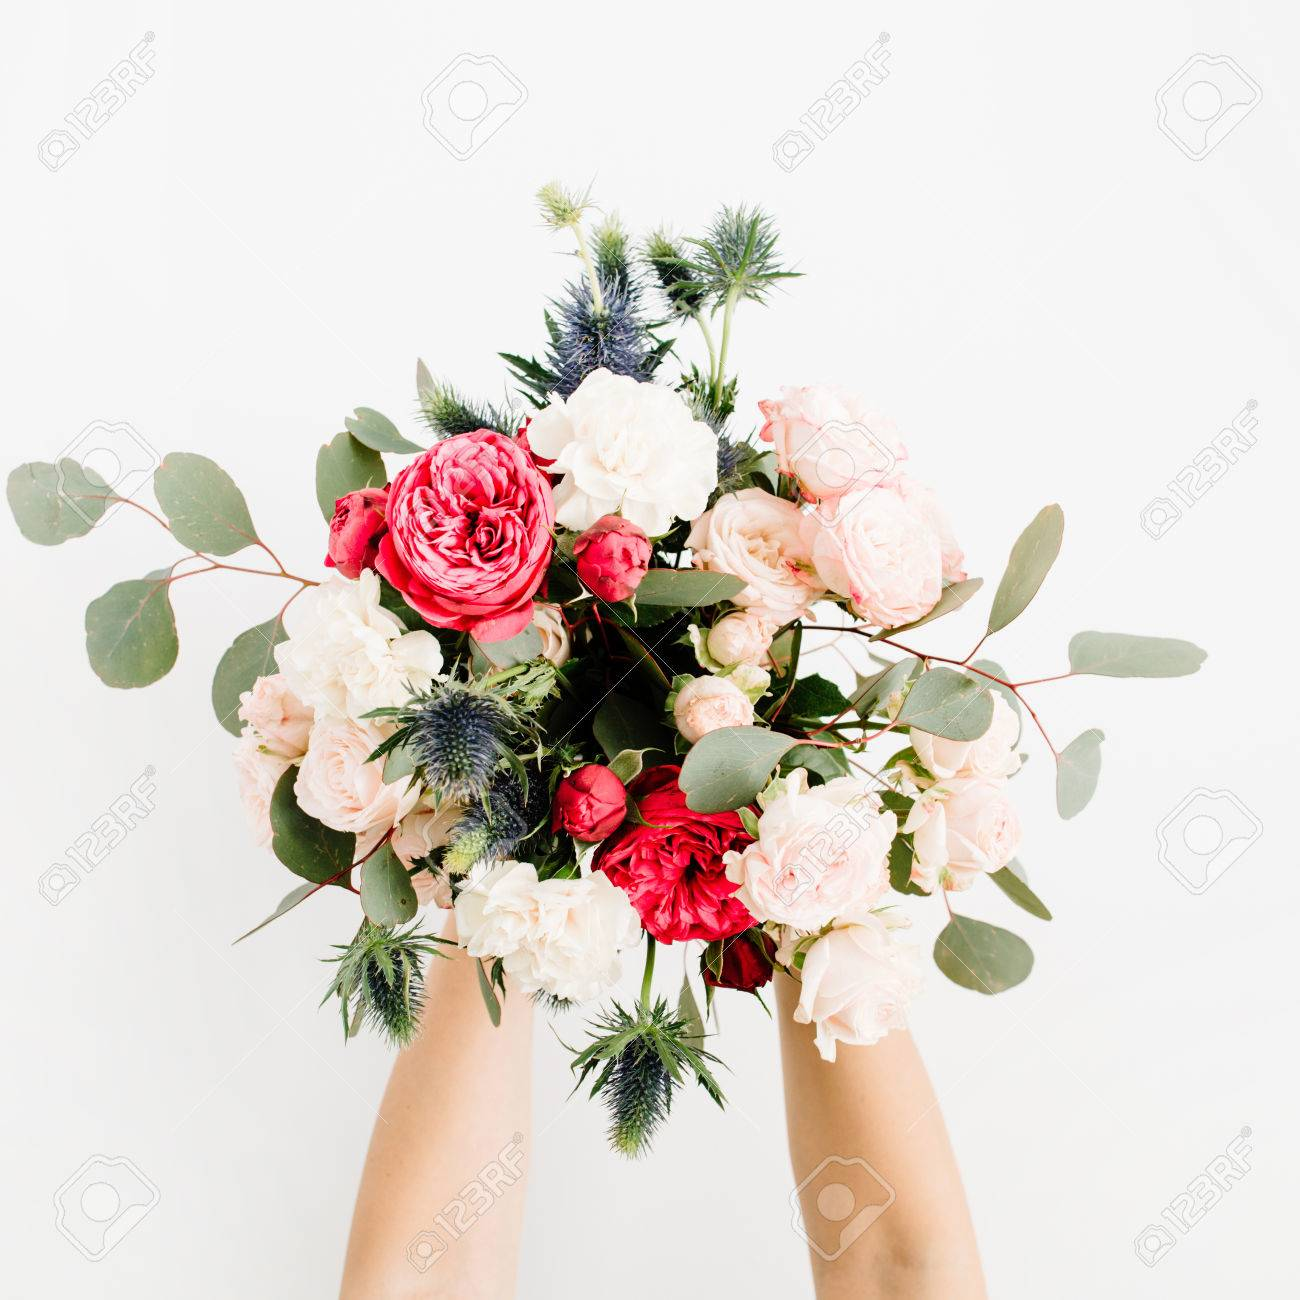 Girl\'s Hands Holding Beautiful Flowers Bouquet: Bombastic Roses ...